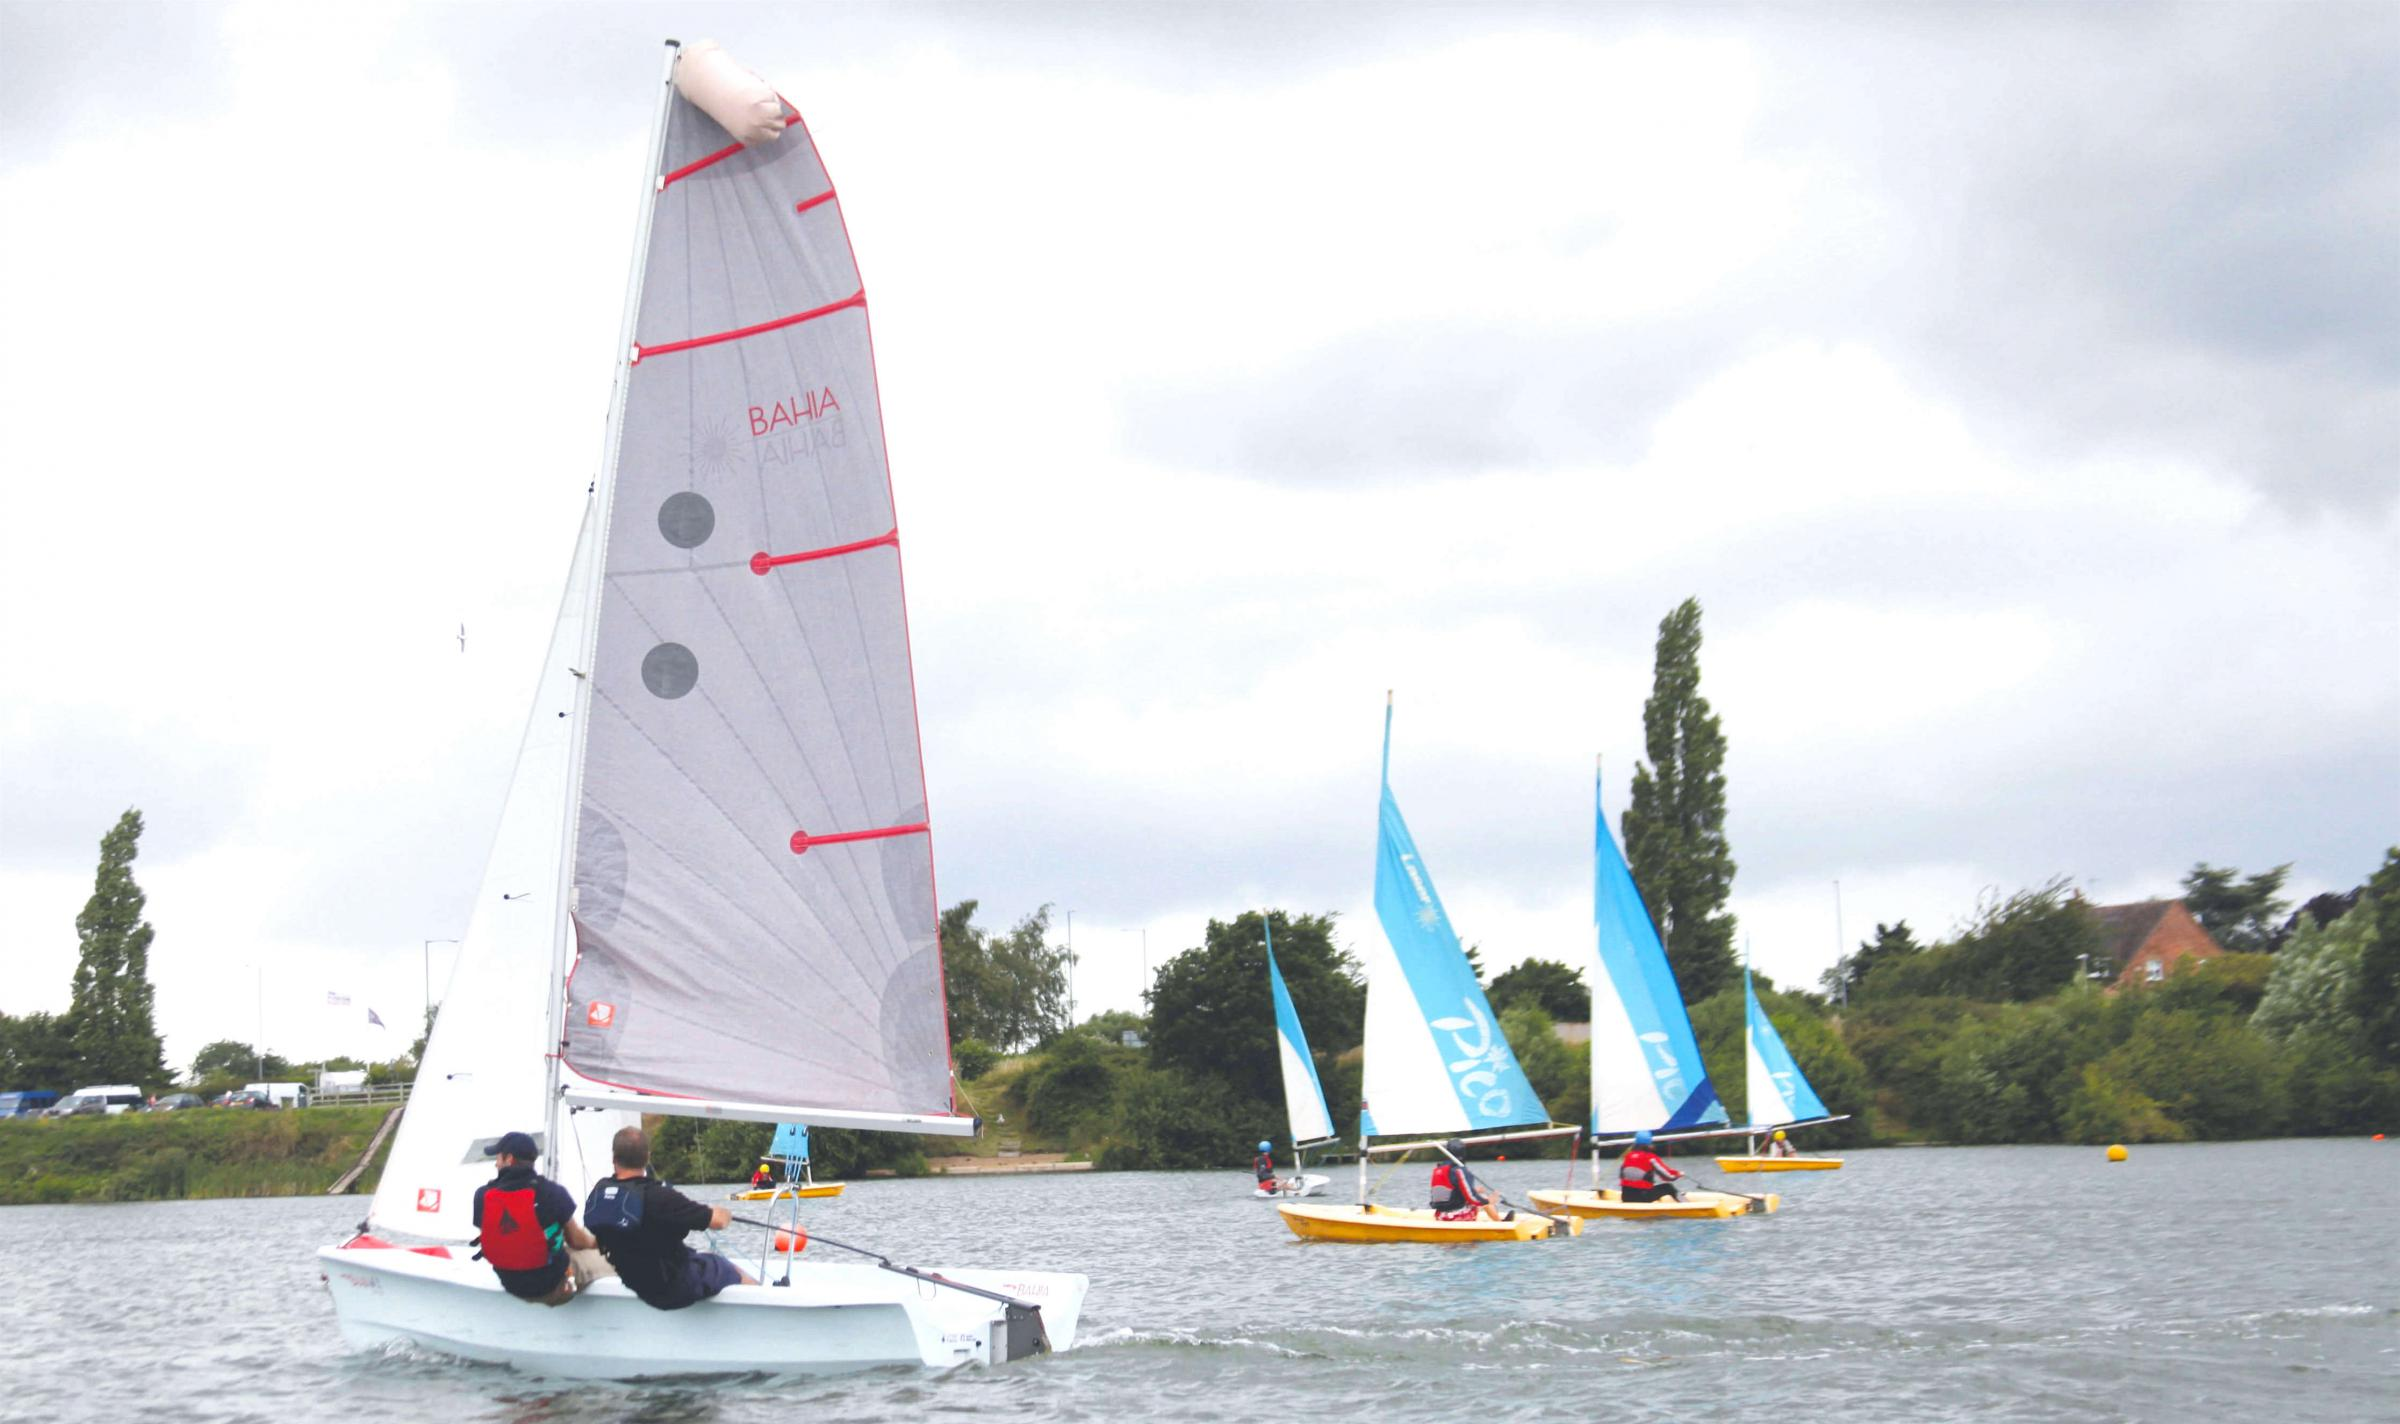 SAILING: Enjoying the water at Aztec Adventure, Upton Warren, near Wychbold. Picture: The Royal Yachting Association